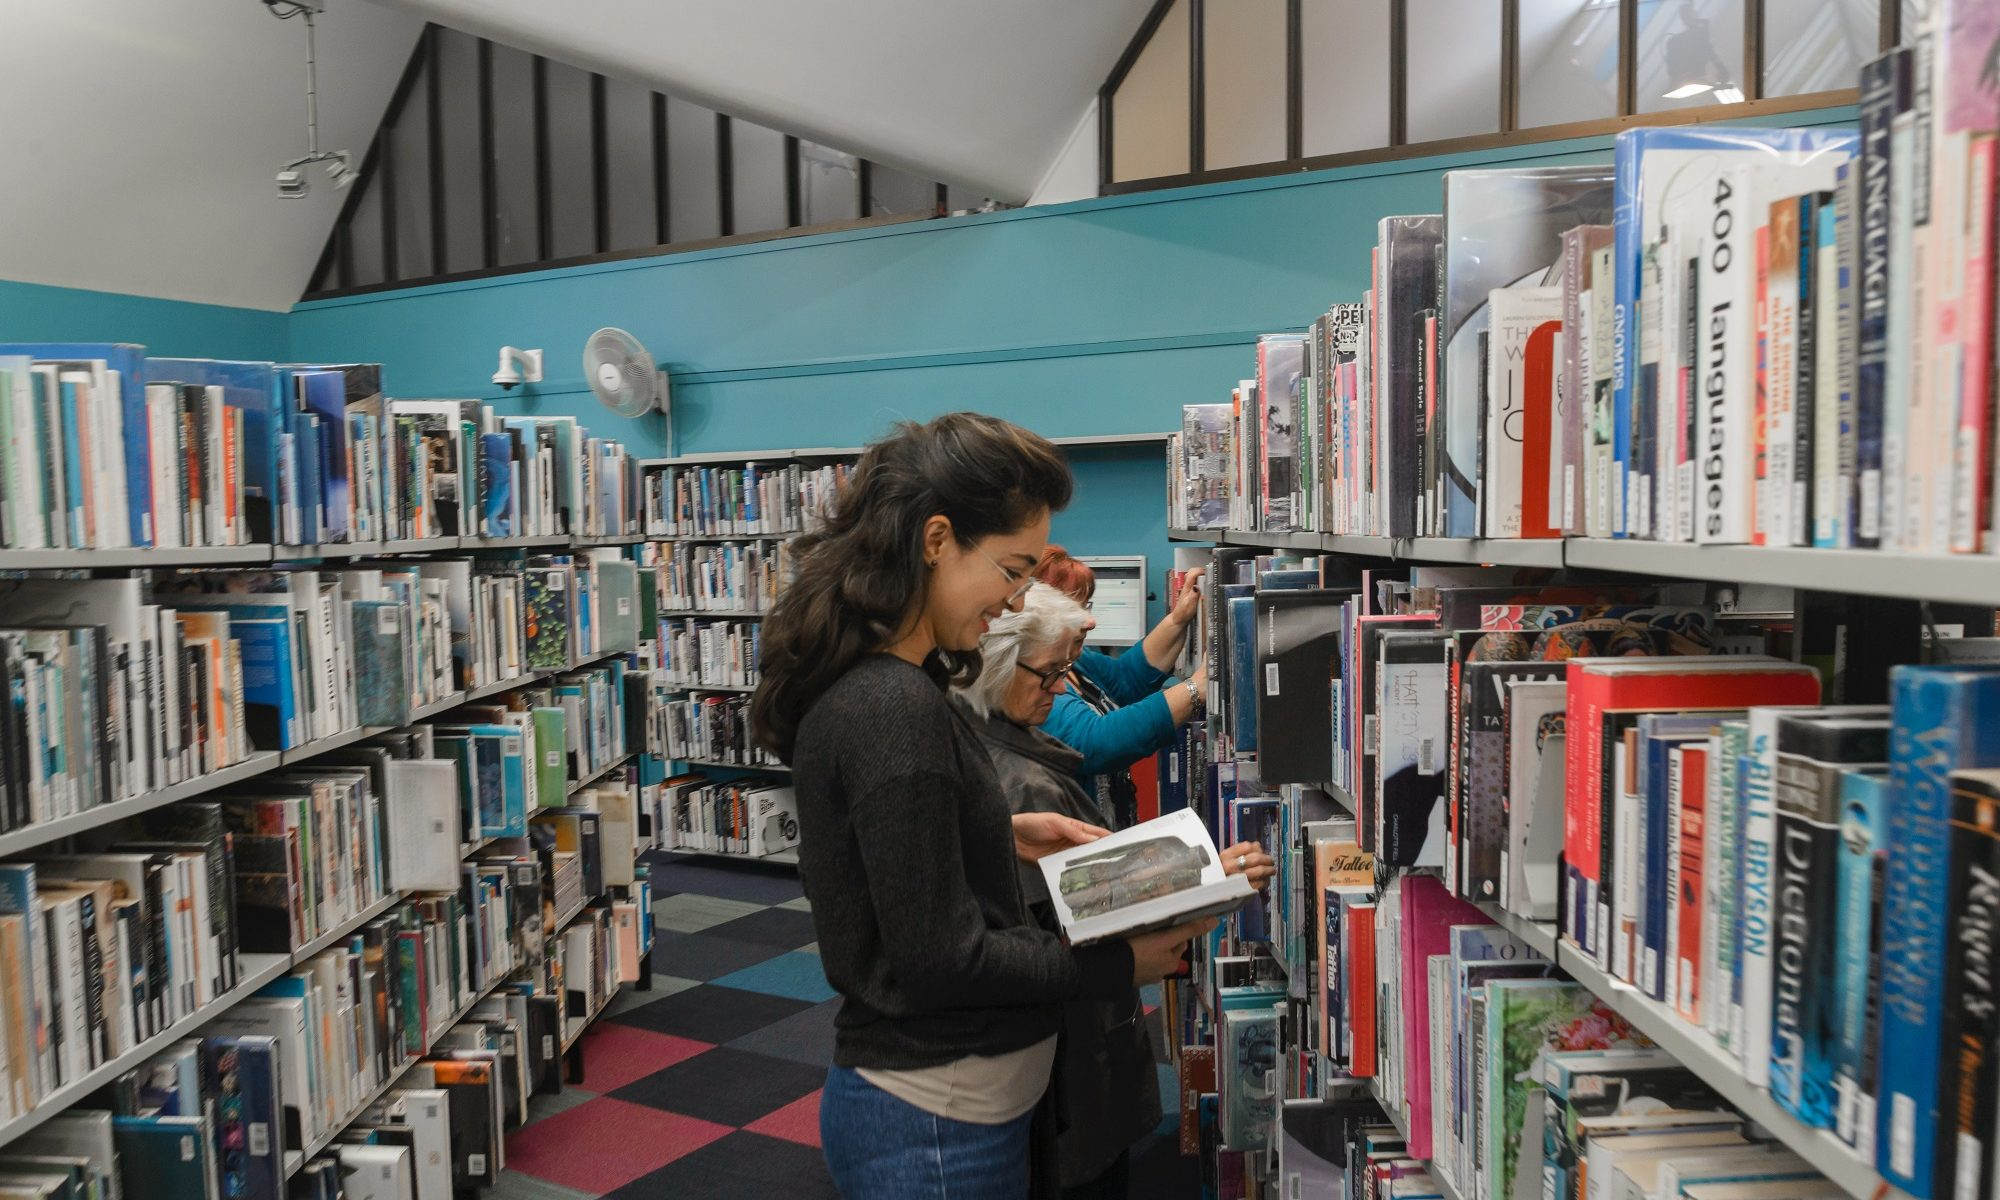 Whanganui District Library